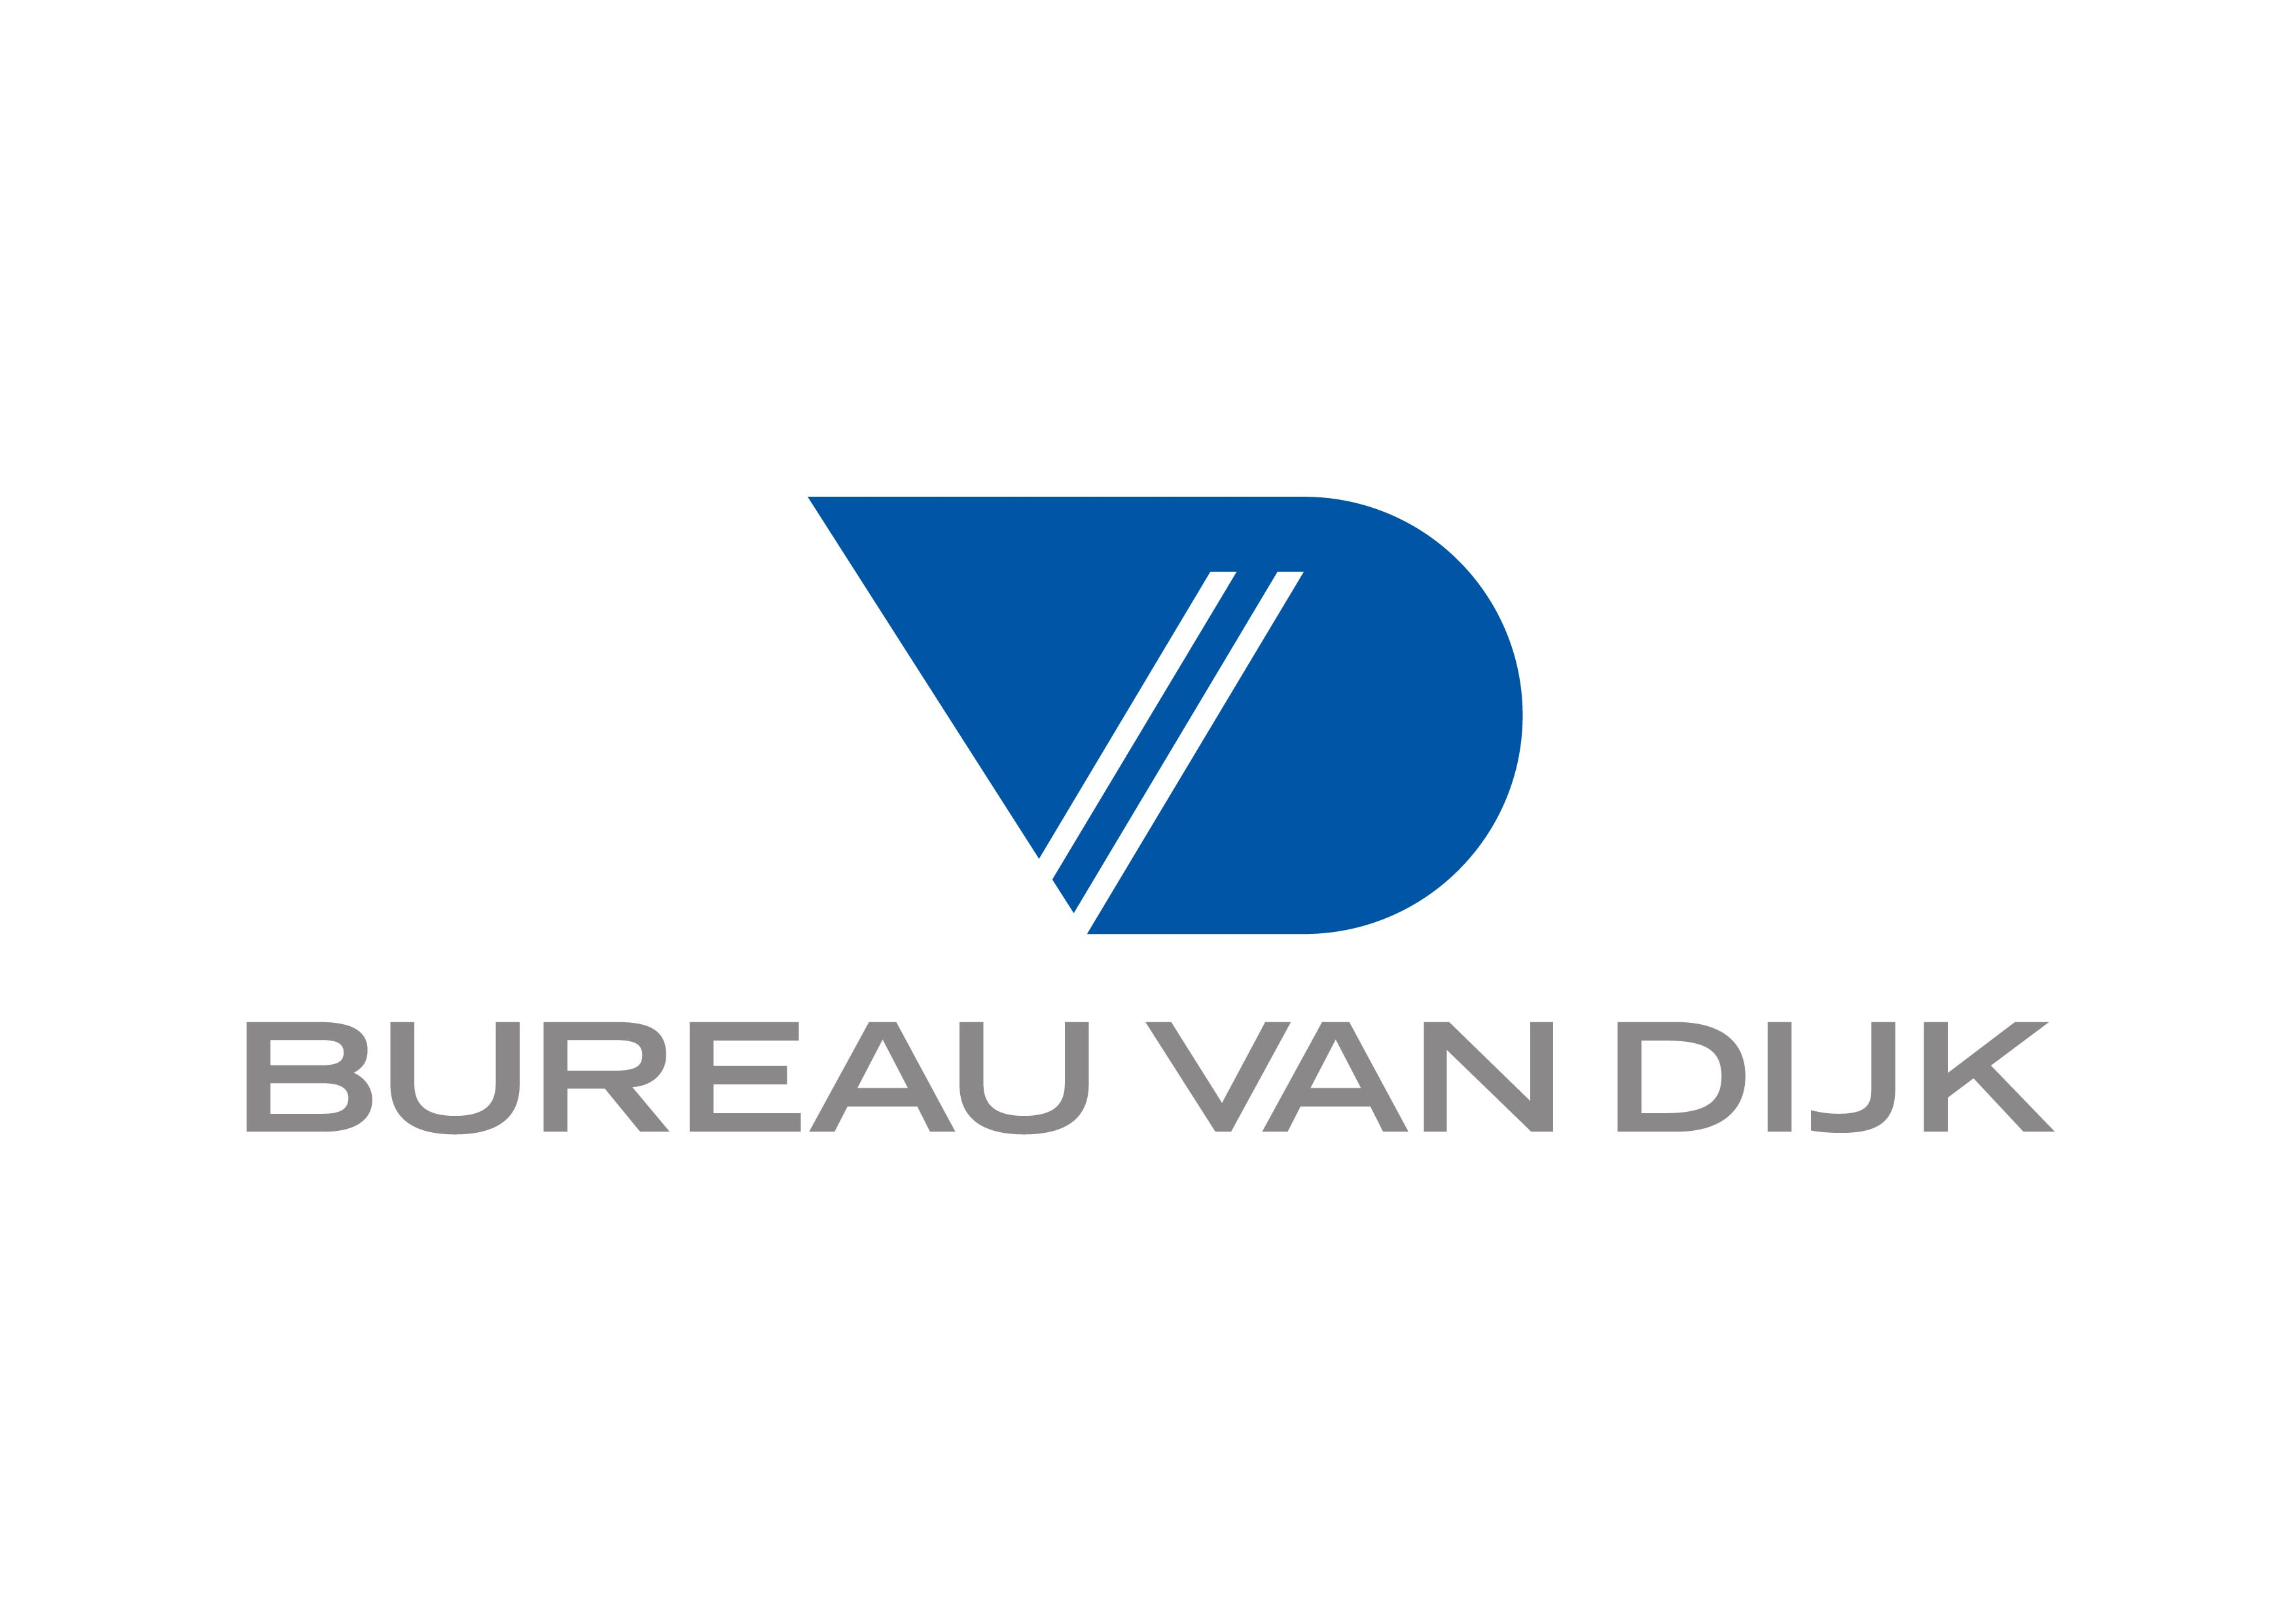 Are you using the Bureau Van Dijk database Antwerp World